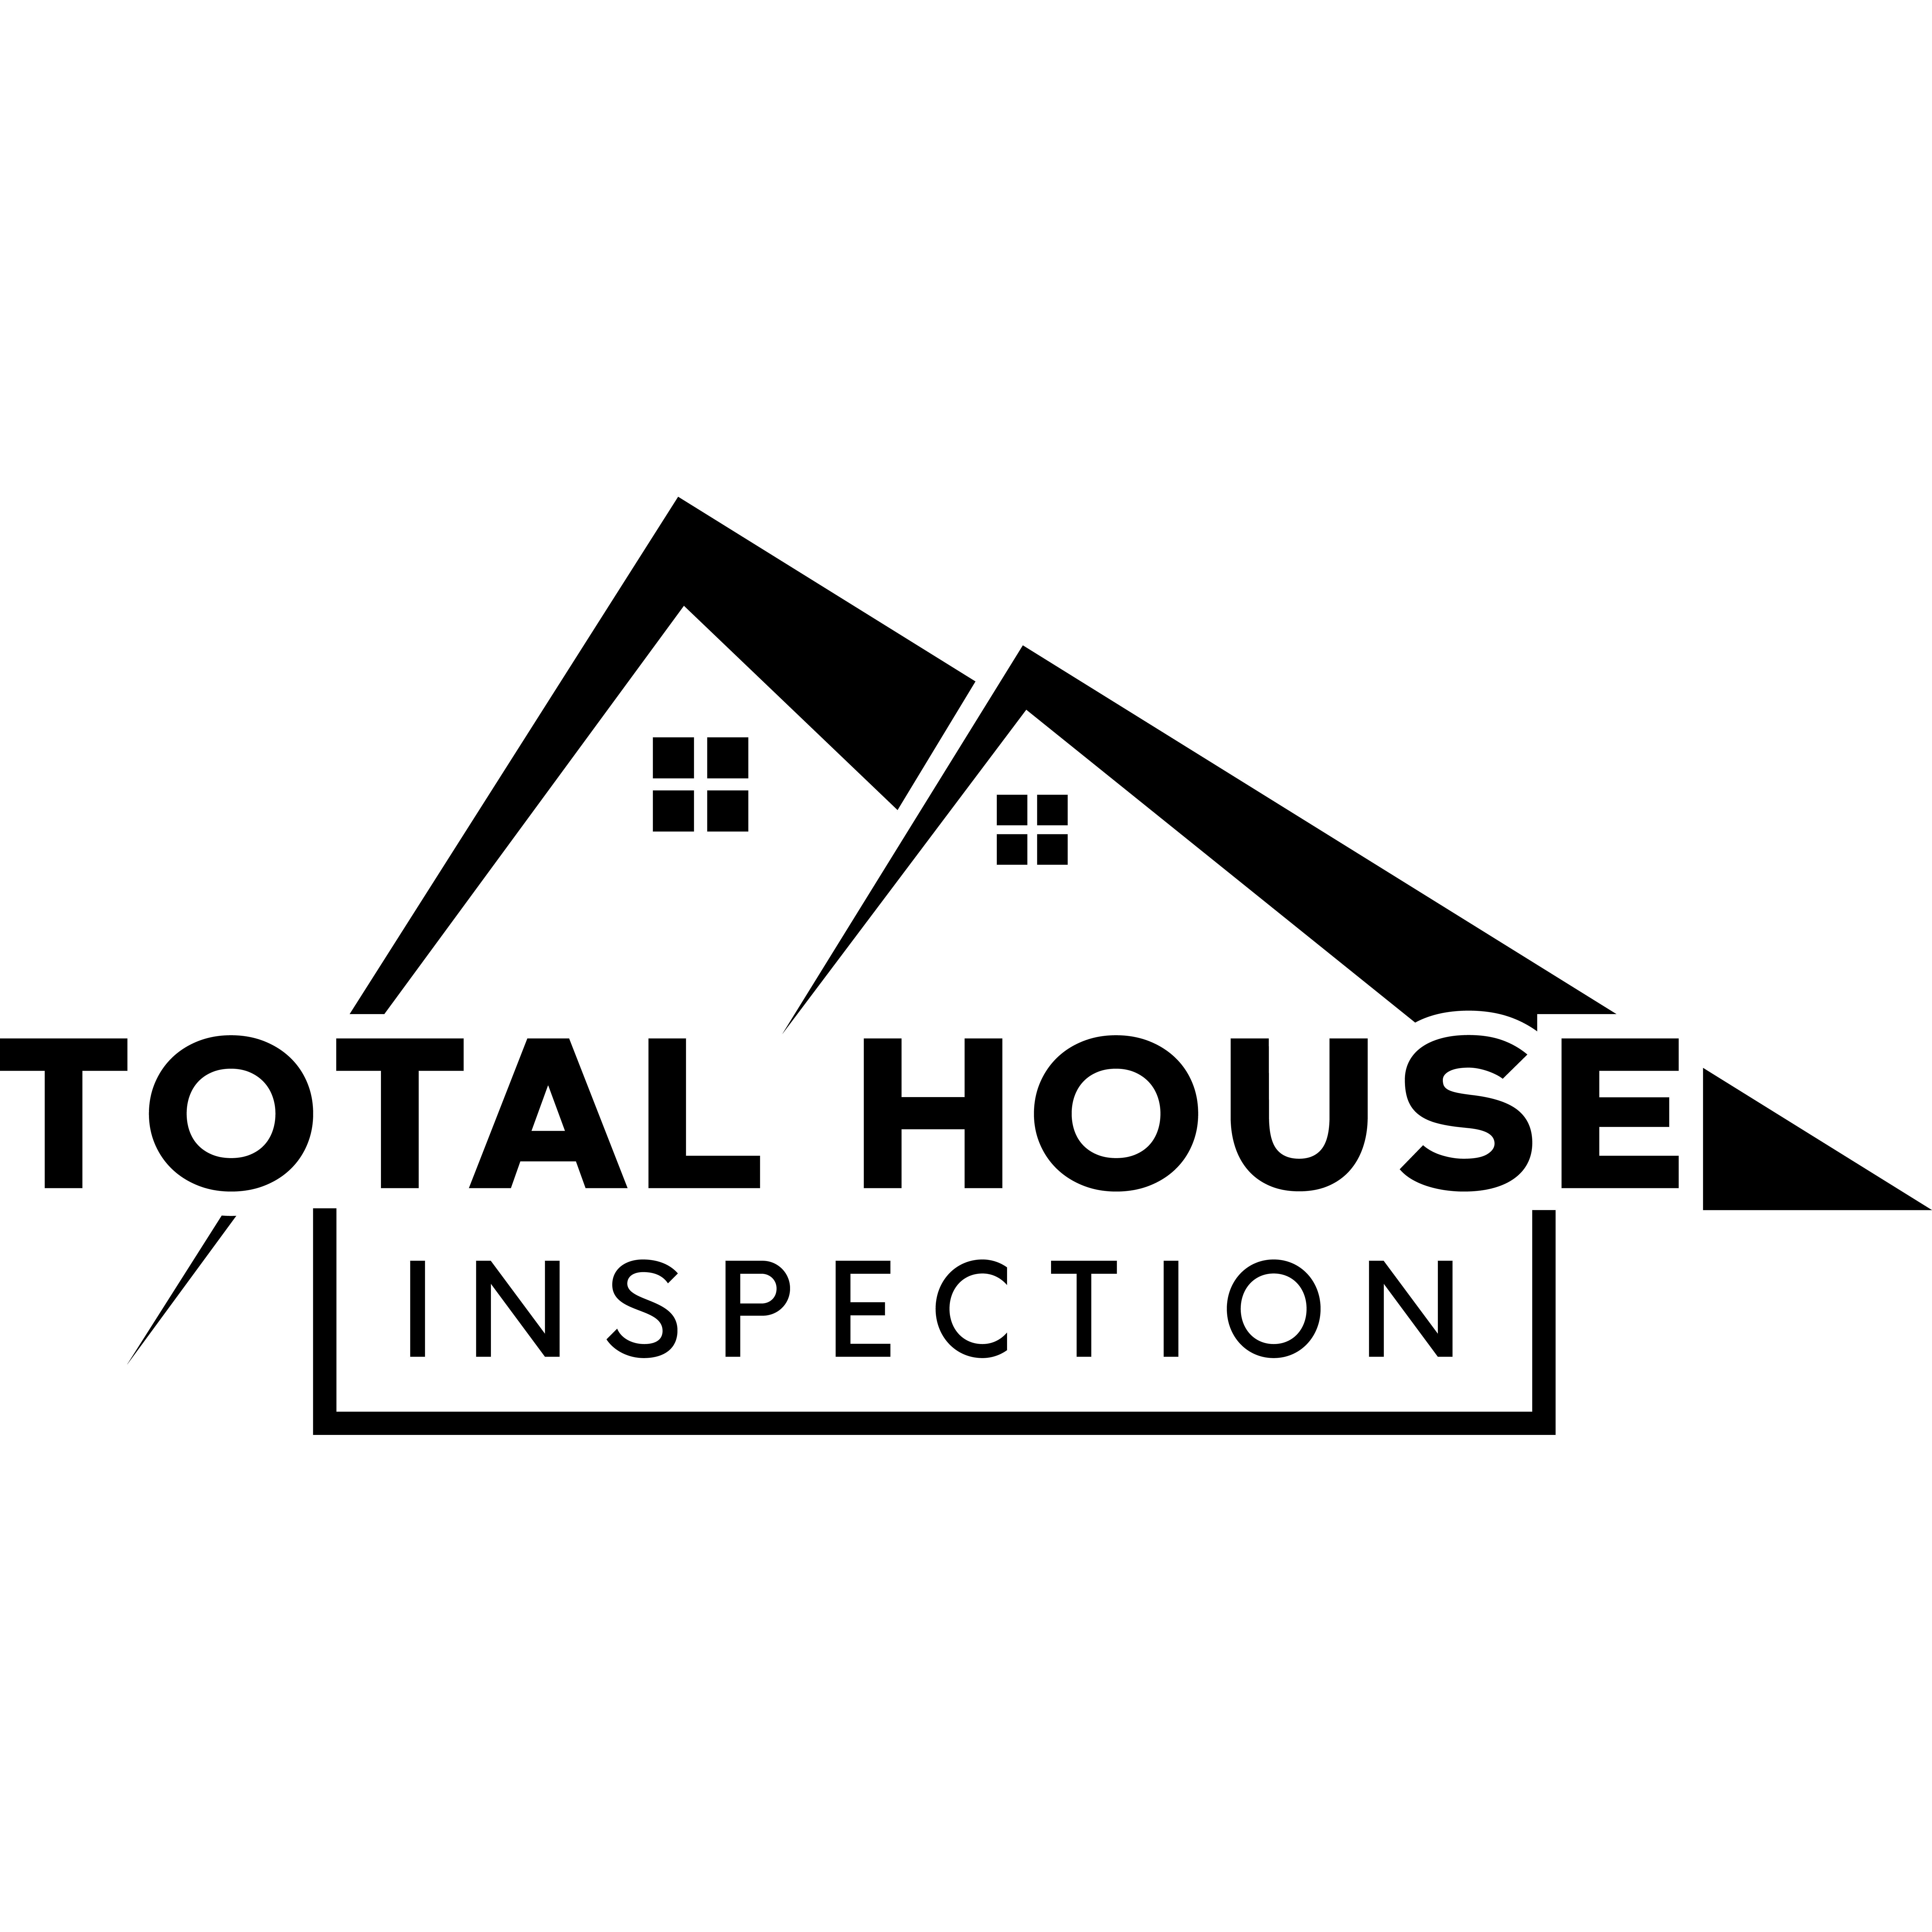 Total House Inspection